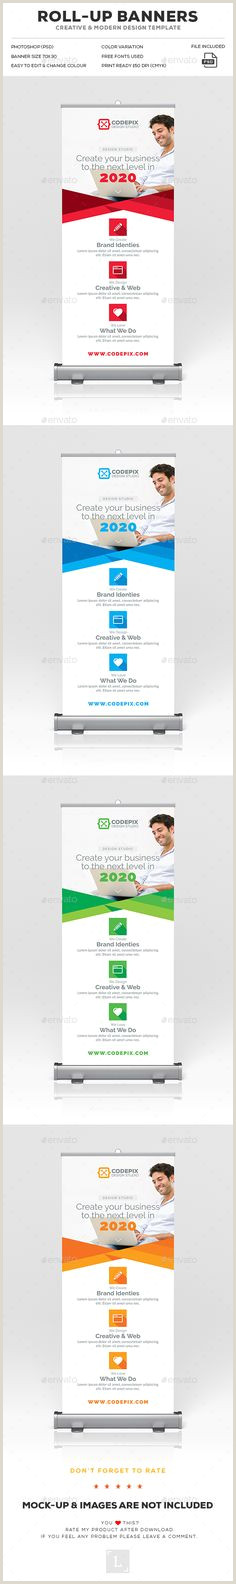 Roll Up Size 100 Best Roll Up Banners Images